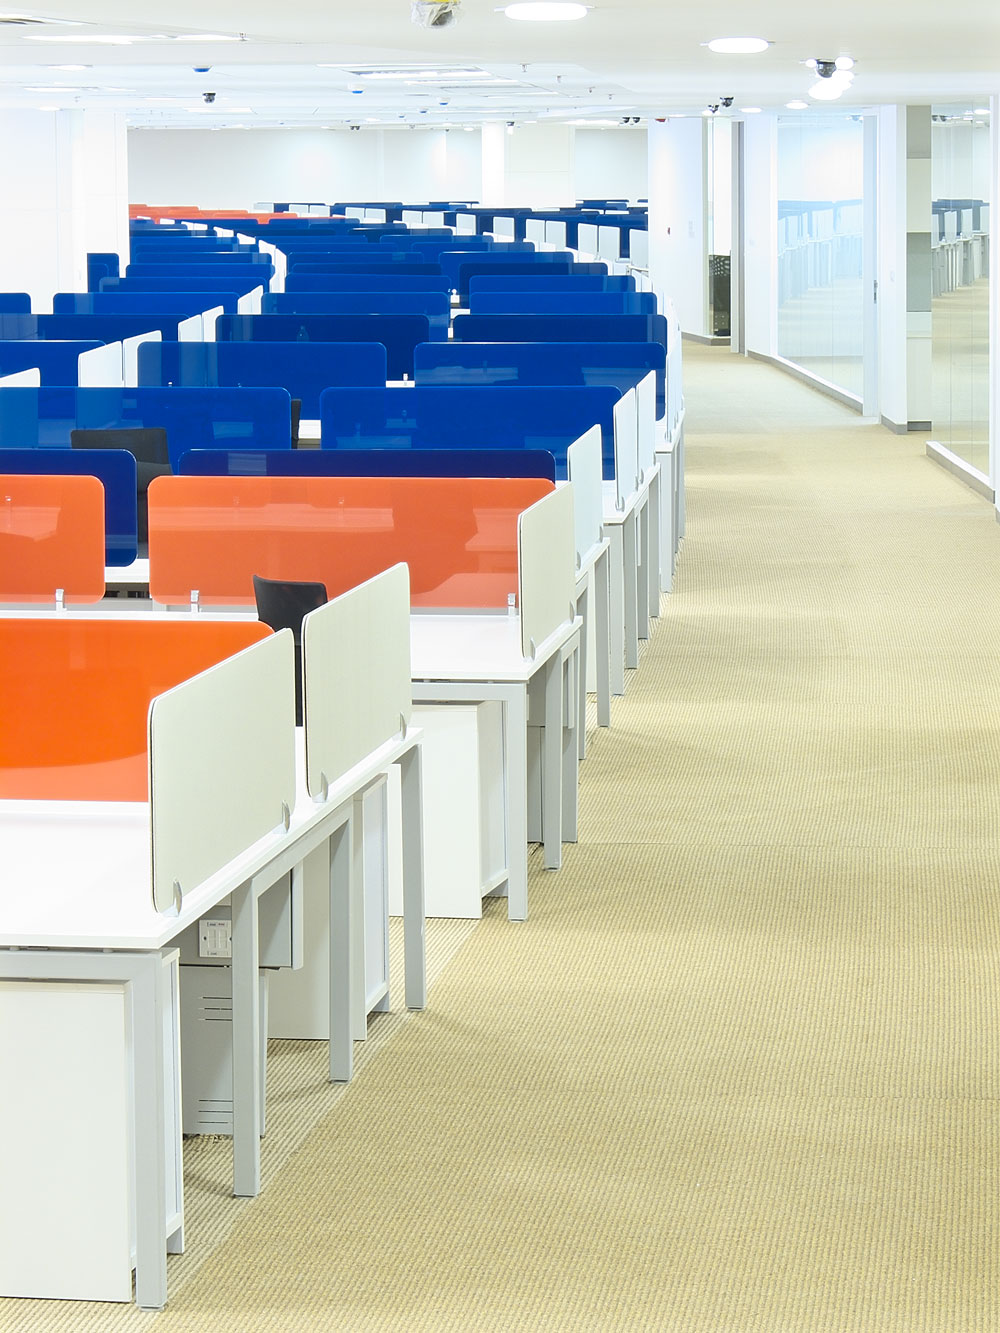 5 Inexpensive Workspace Improvements That Boost Productivity - inFocus